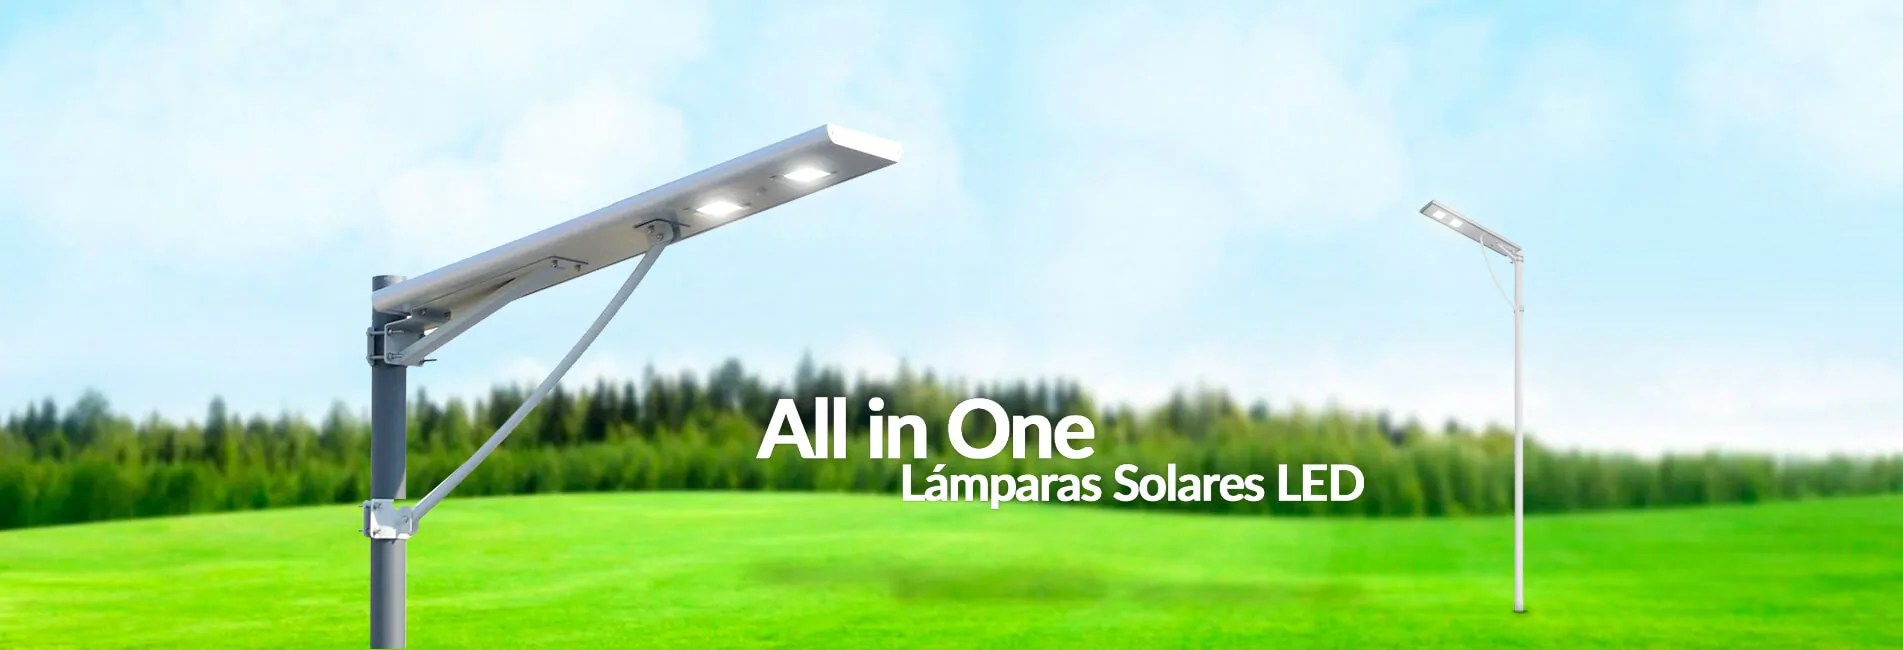 Lámparas Solares LED All in one